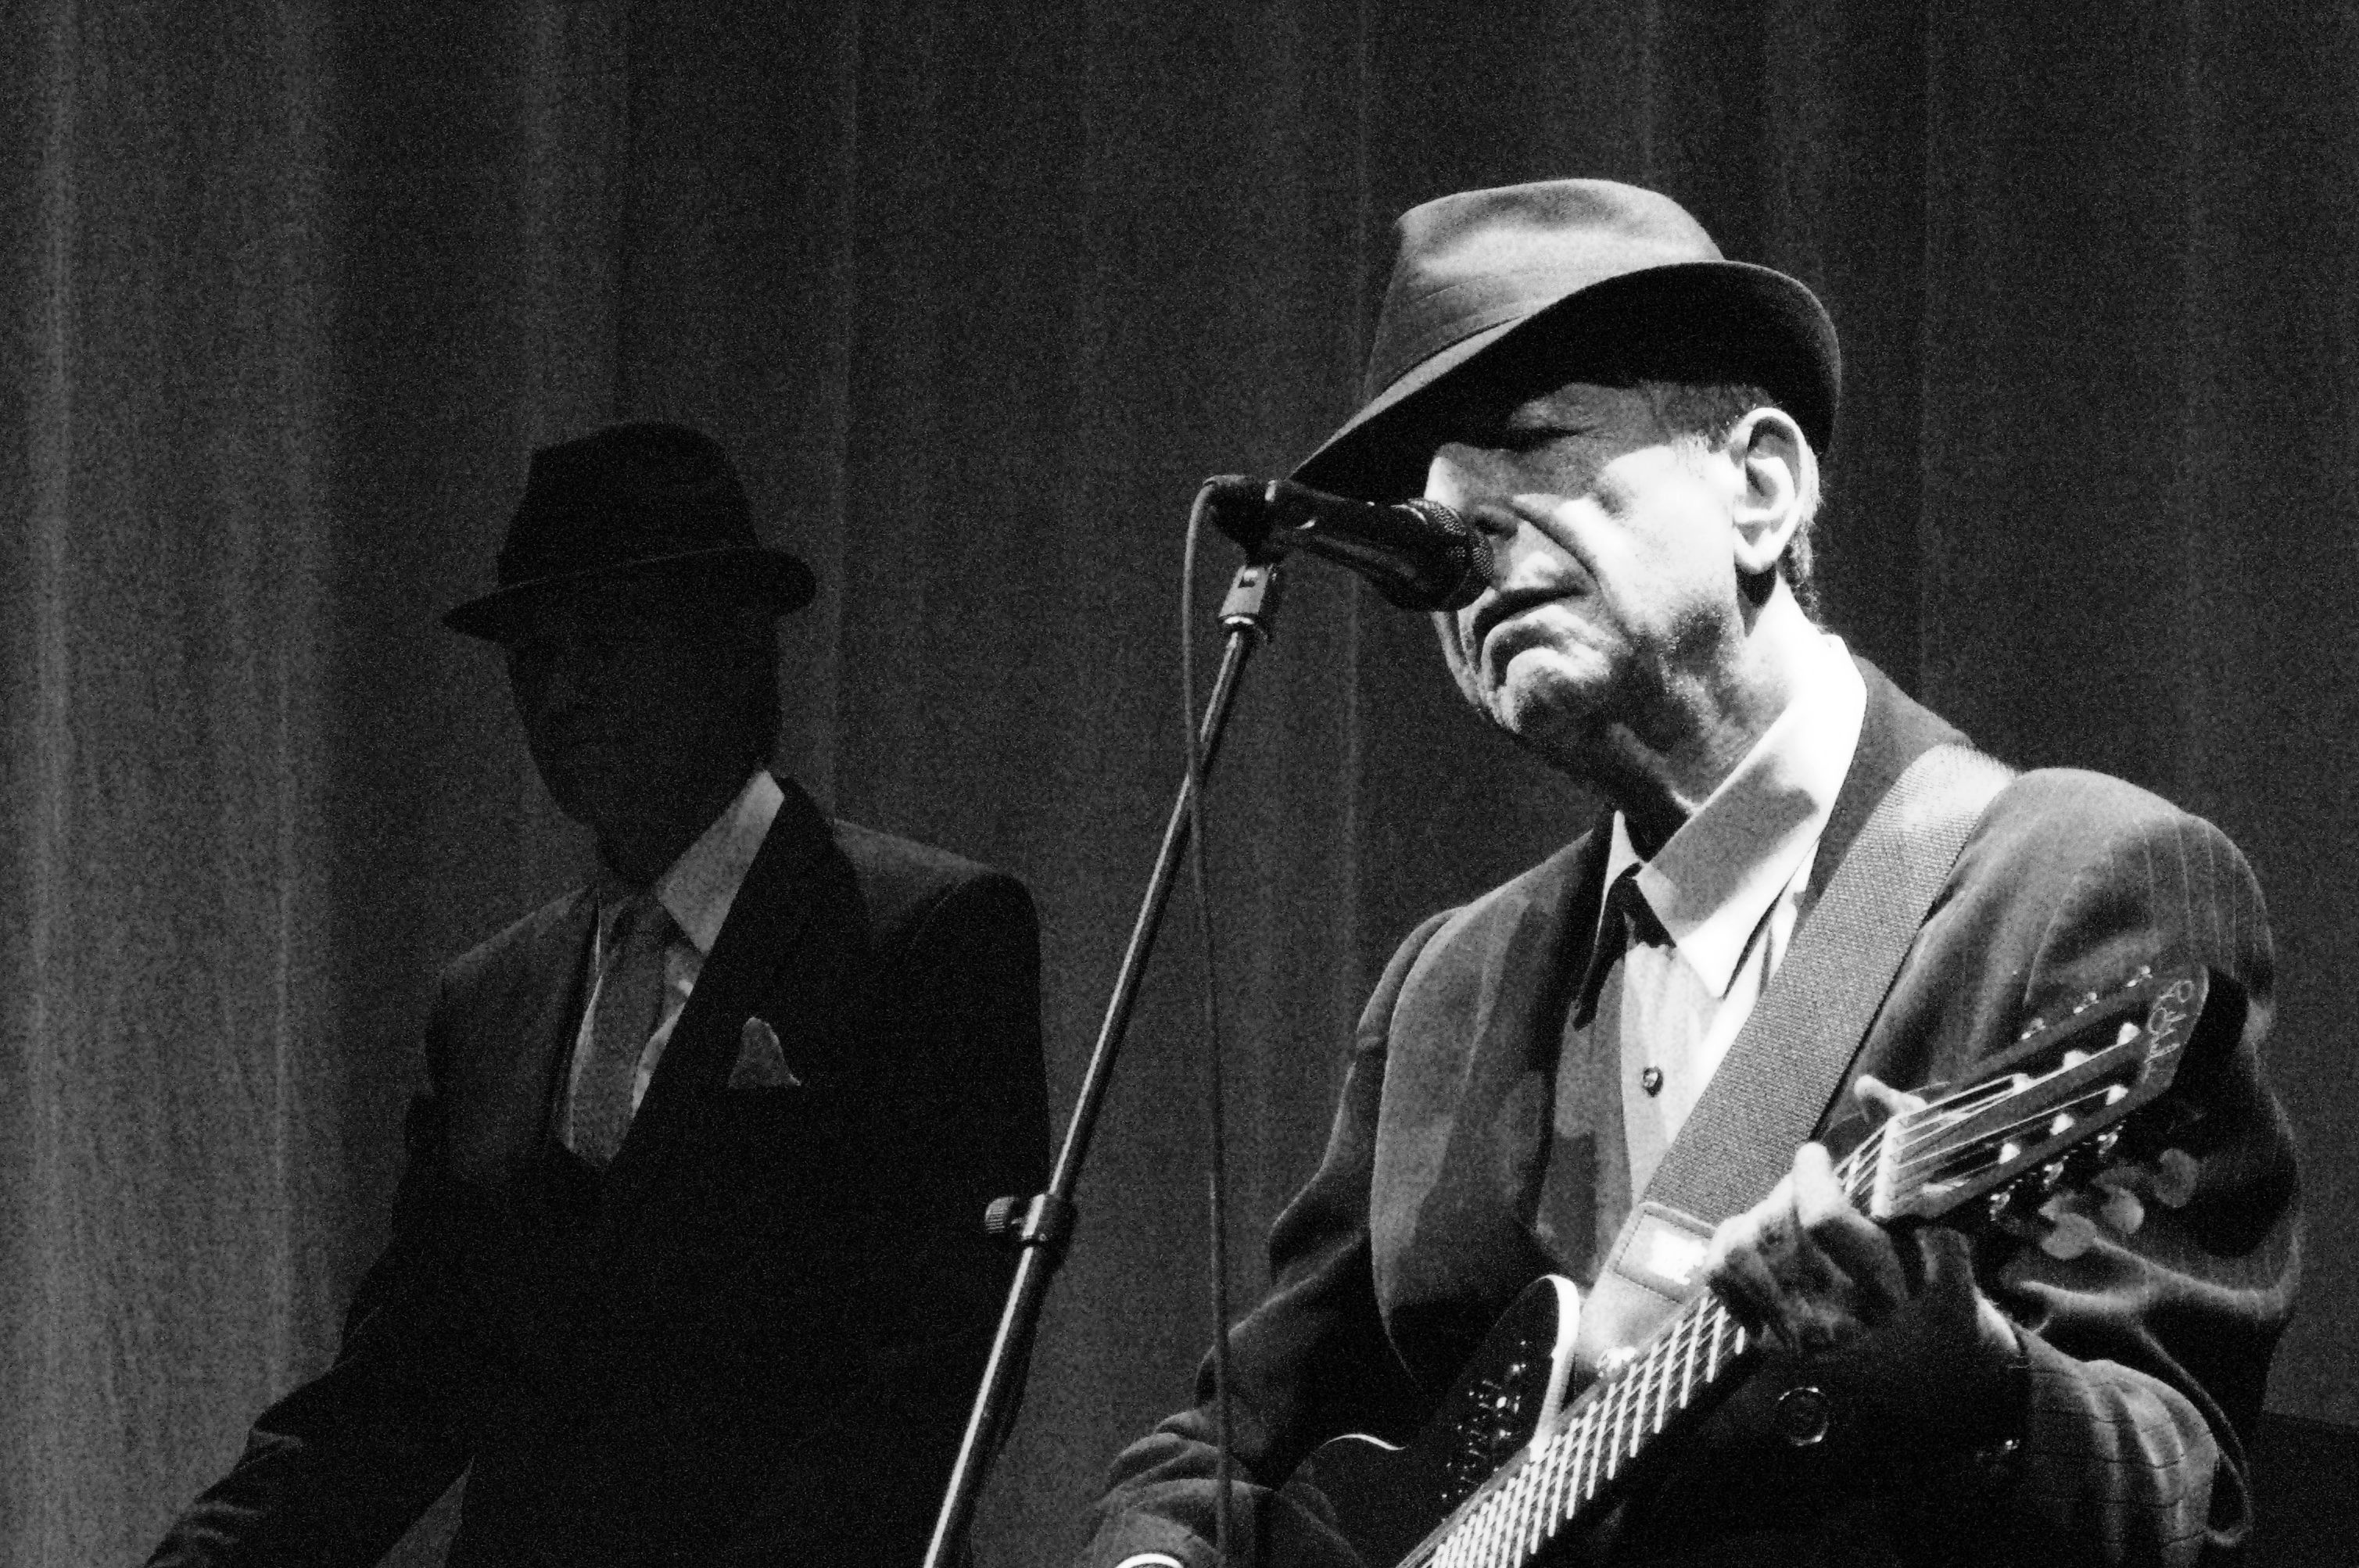 leonard cohen in a fedora on stage